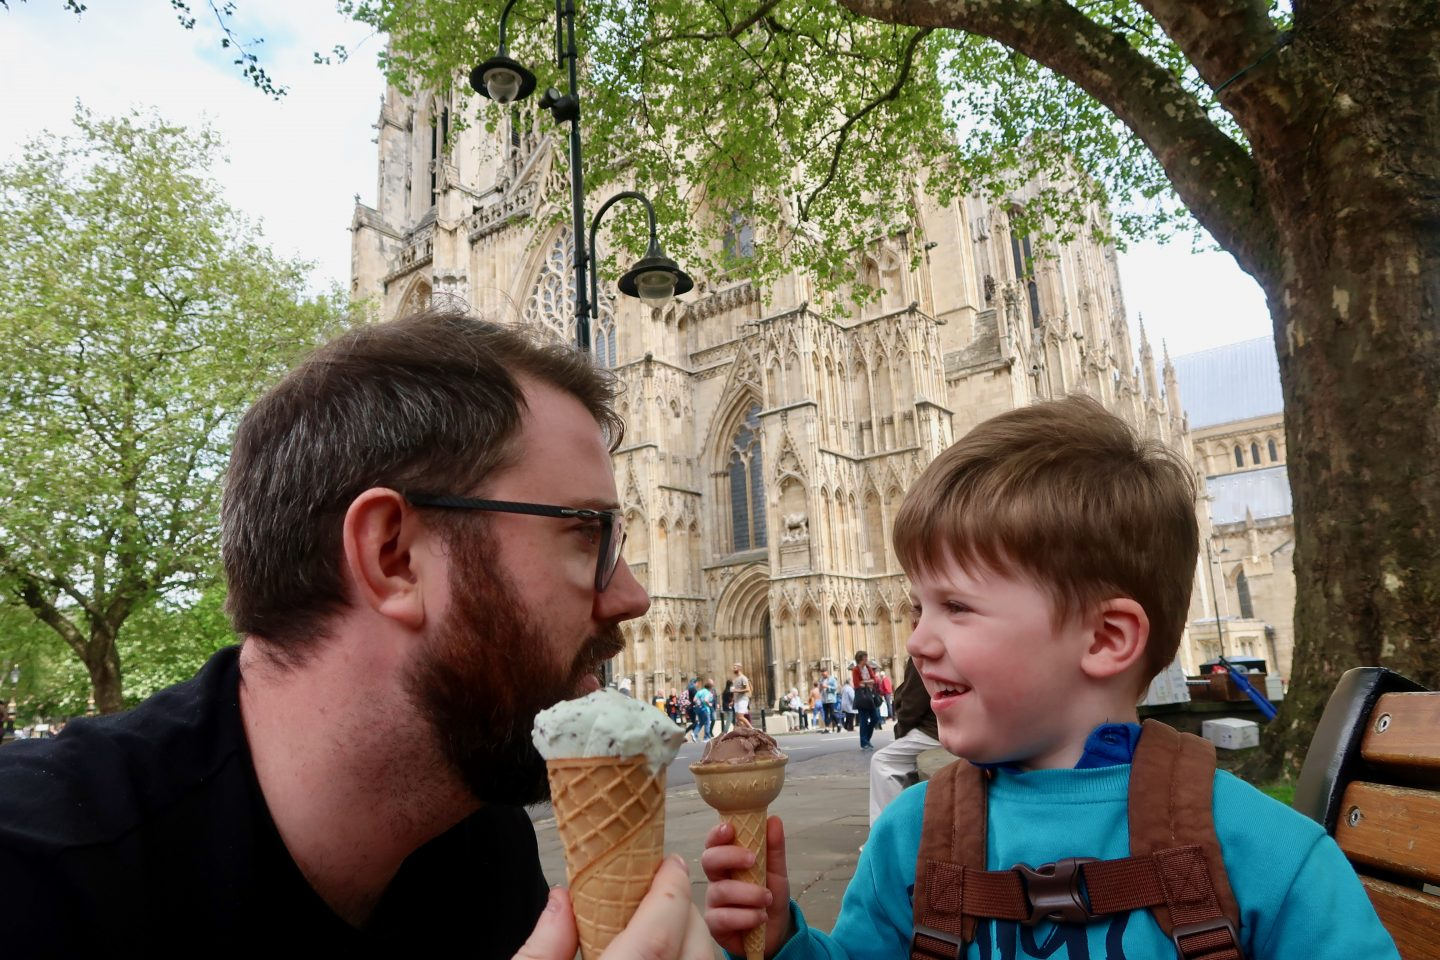 A young boy in a blue jumper is eating a chocolate ice cream with his father, eating a mint ice cream, in front of York Minister